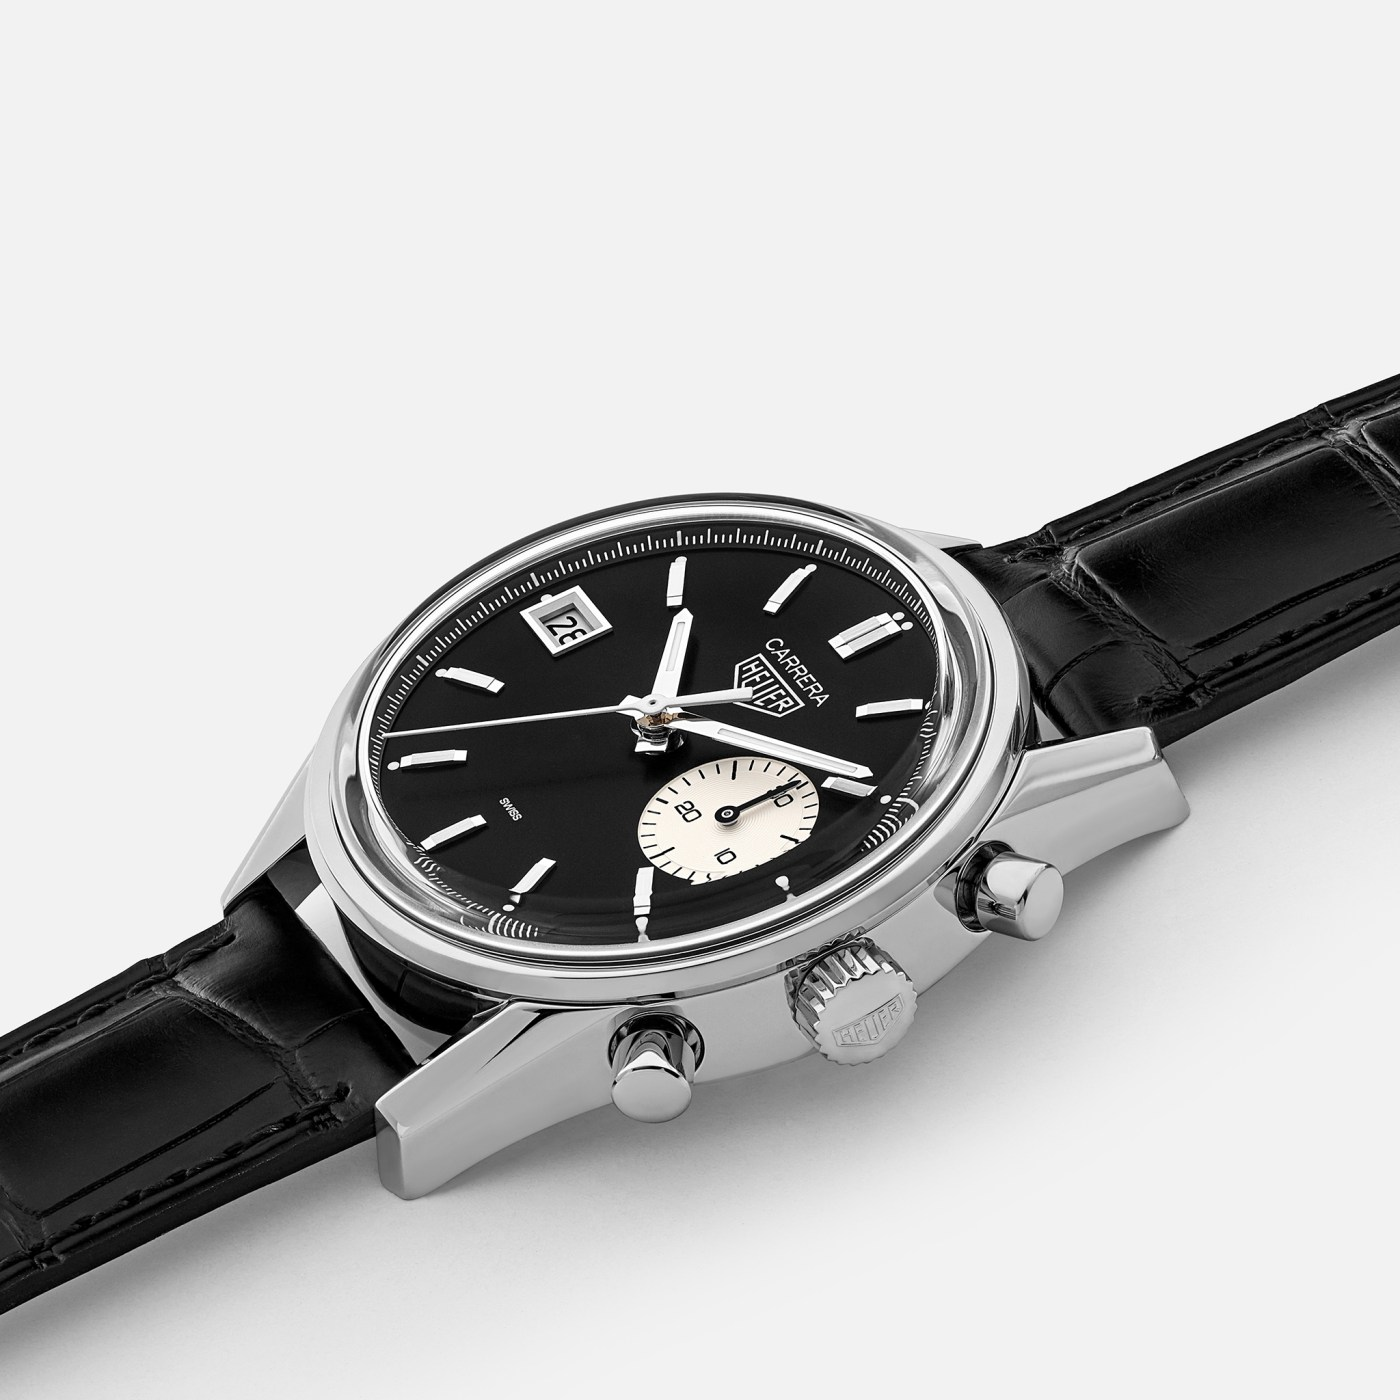 TAG Heuer Dato 45 Hodinkee Limited Edition